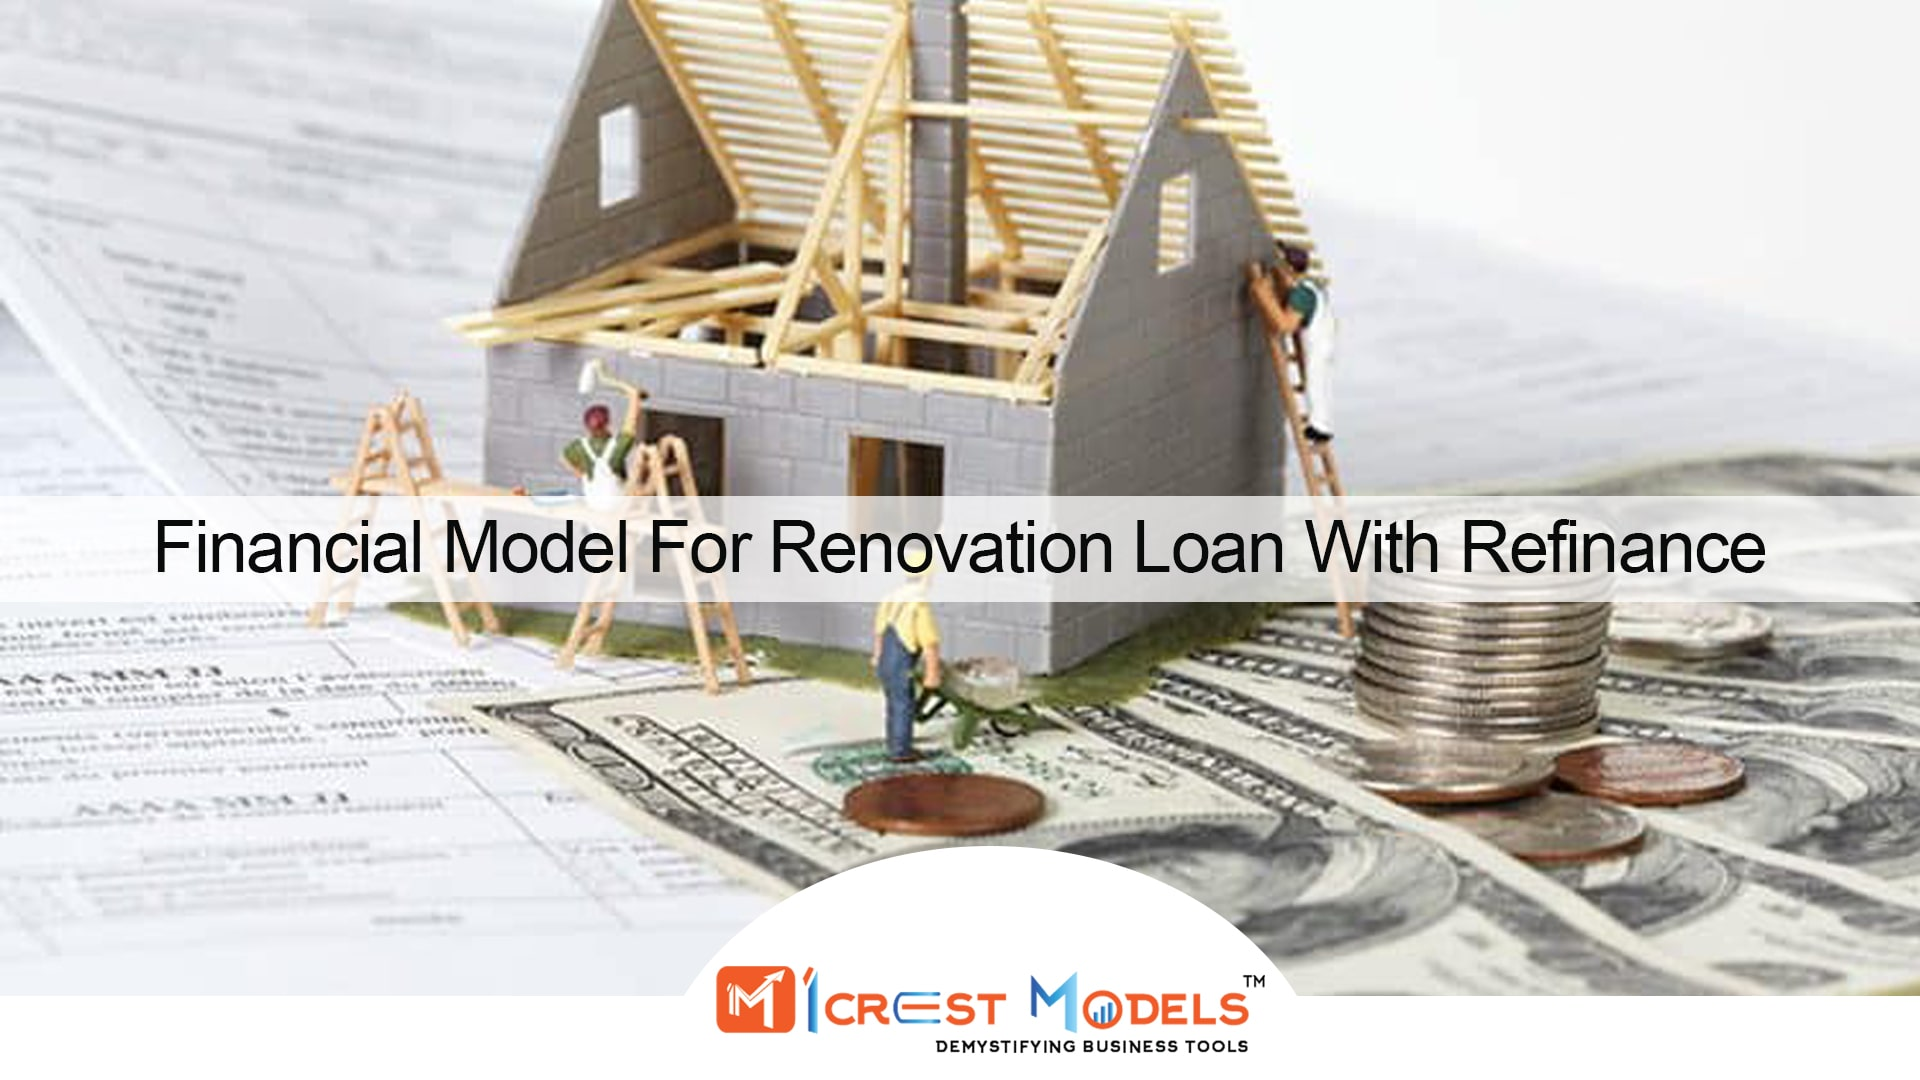 Financial Model For Renovation Loan With Refinance